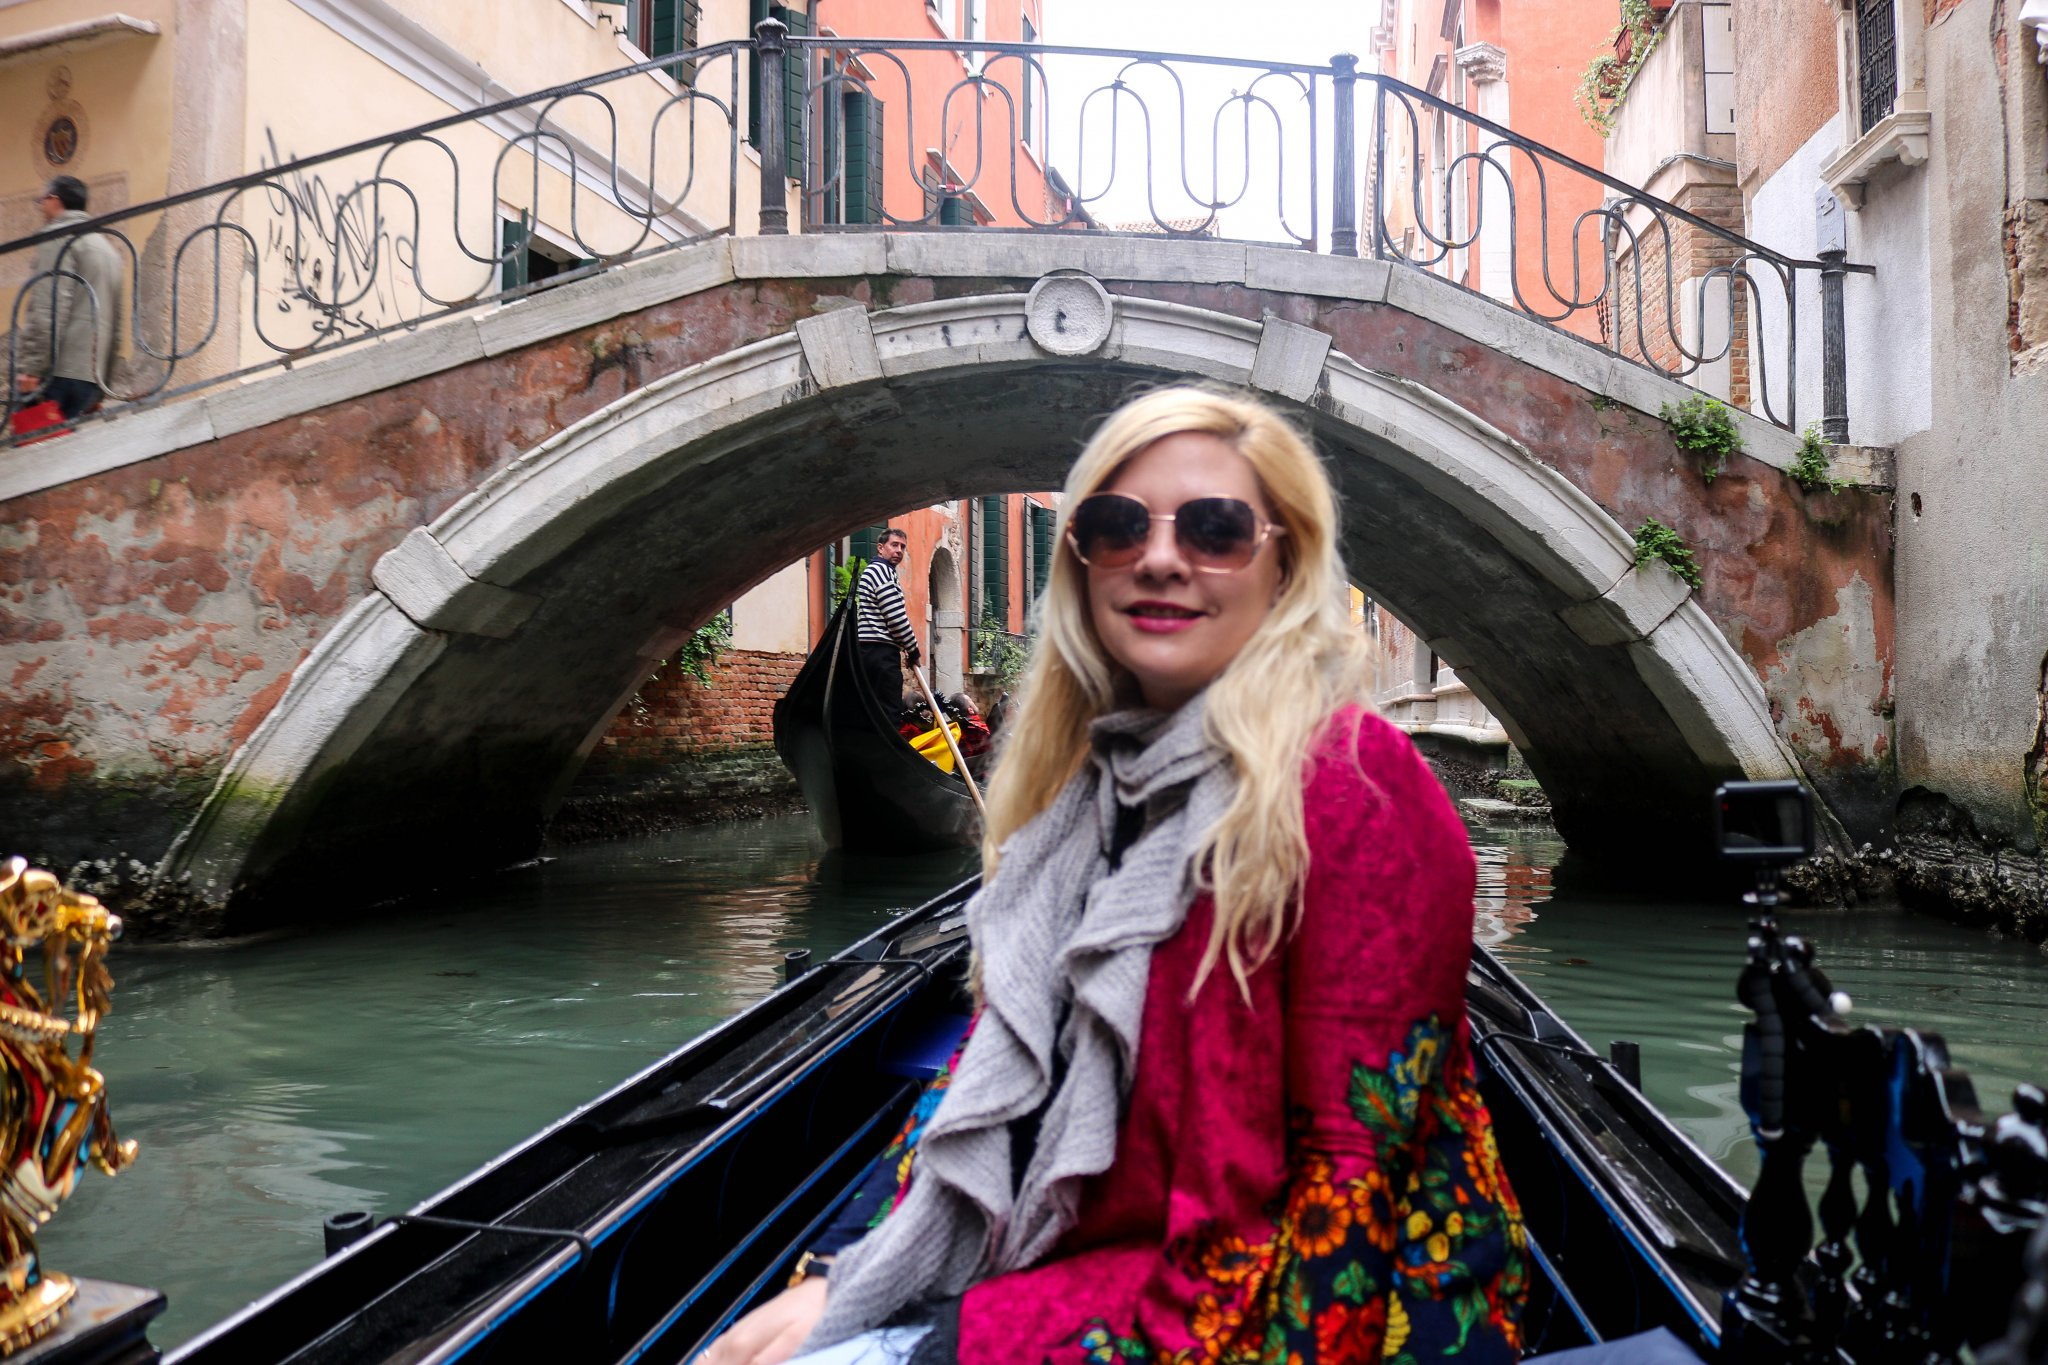 Venice travel guide - What to see and do in the City of Canals